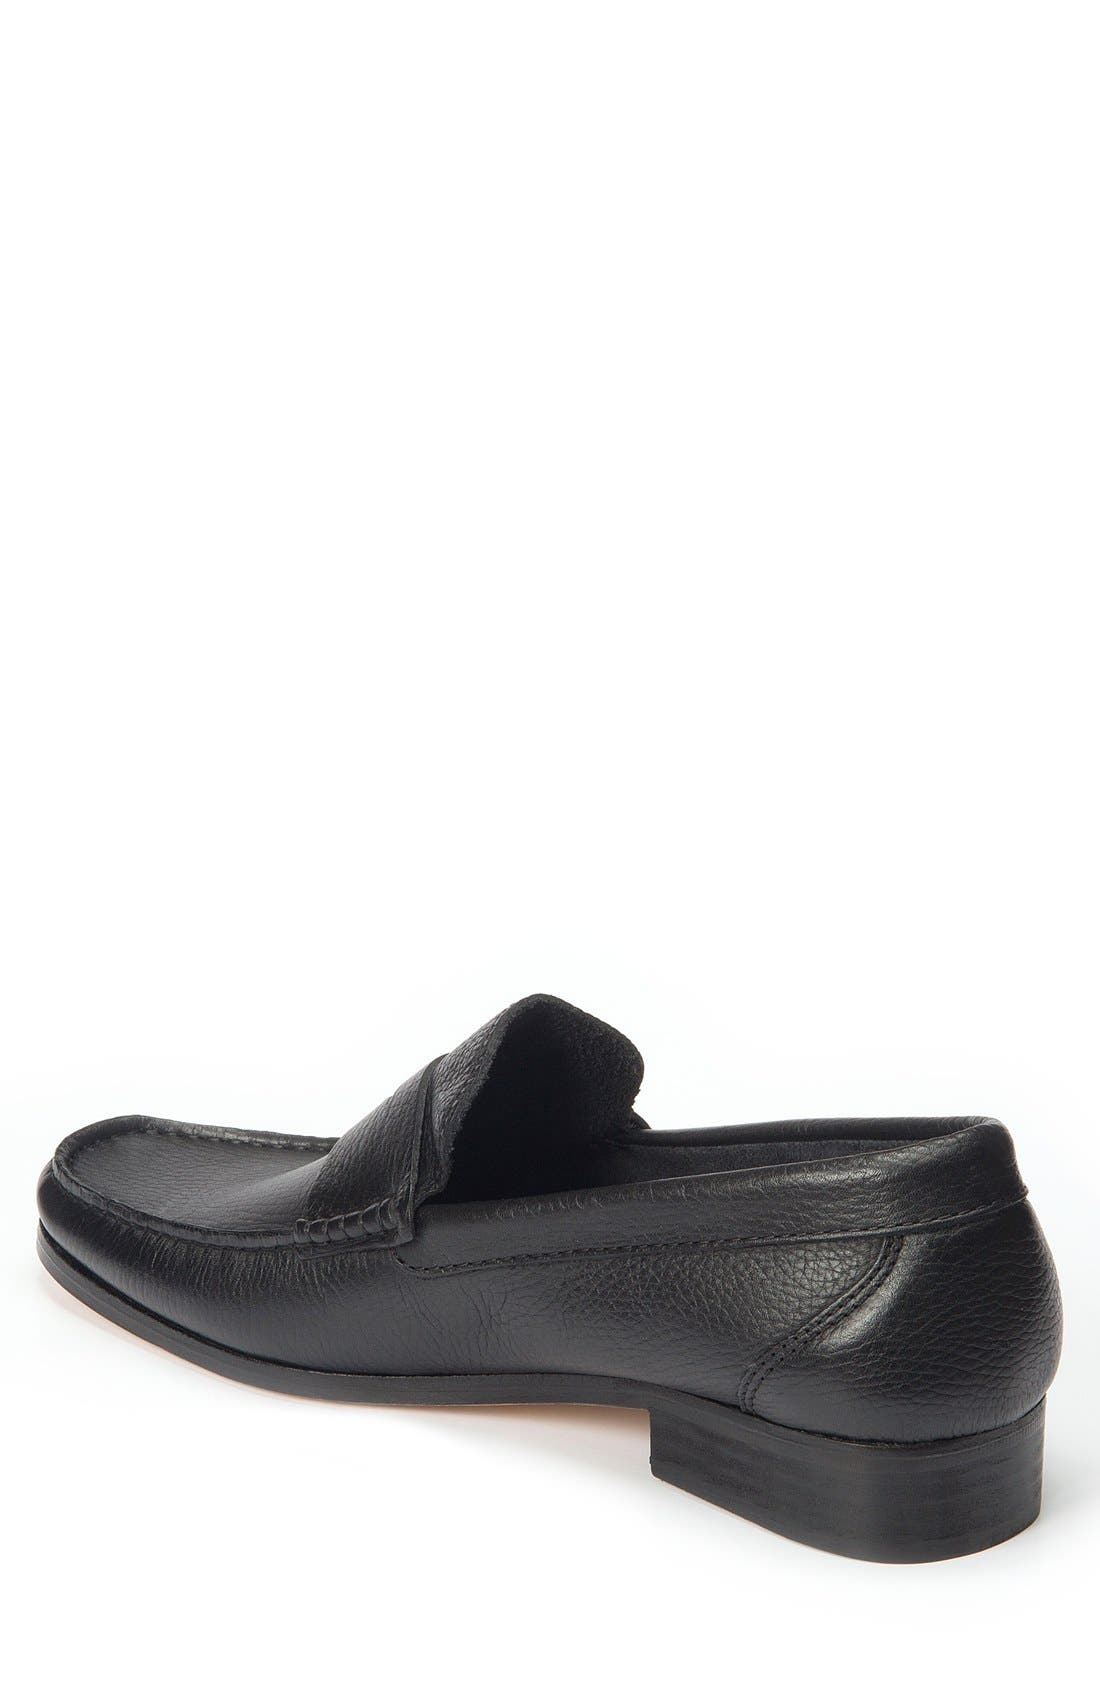 Segovia Penny Loafer,                             Alternate thumbnail 2, color,                             Black Leather